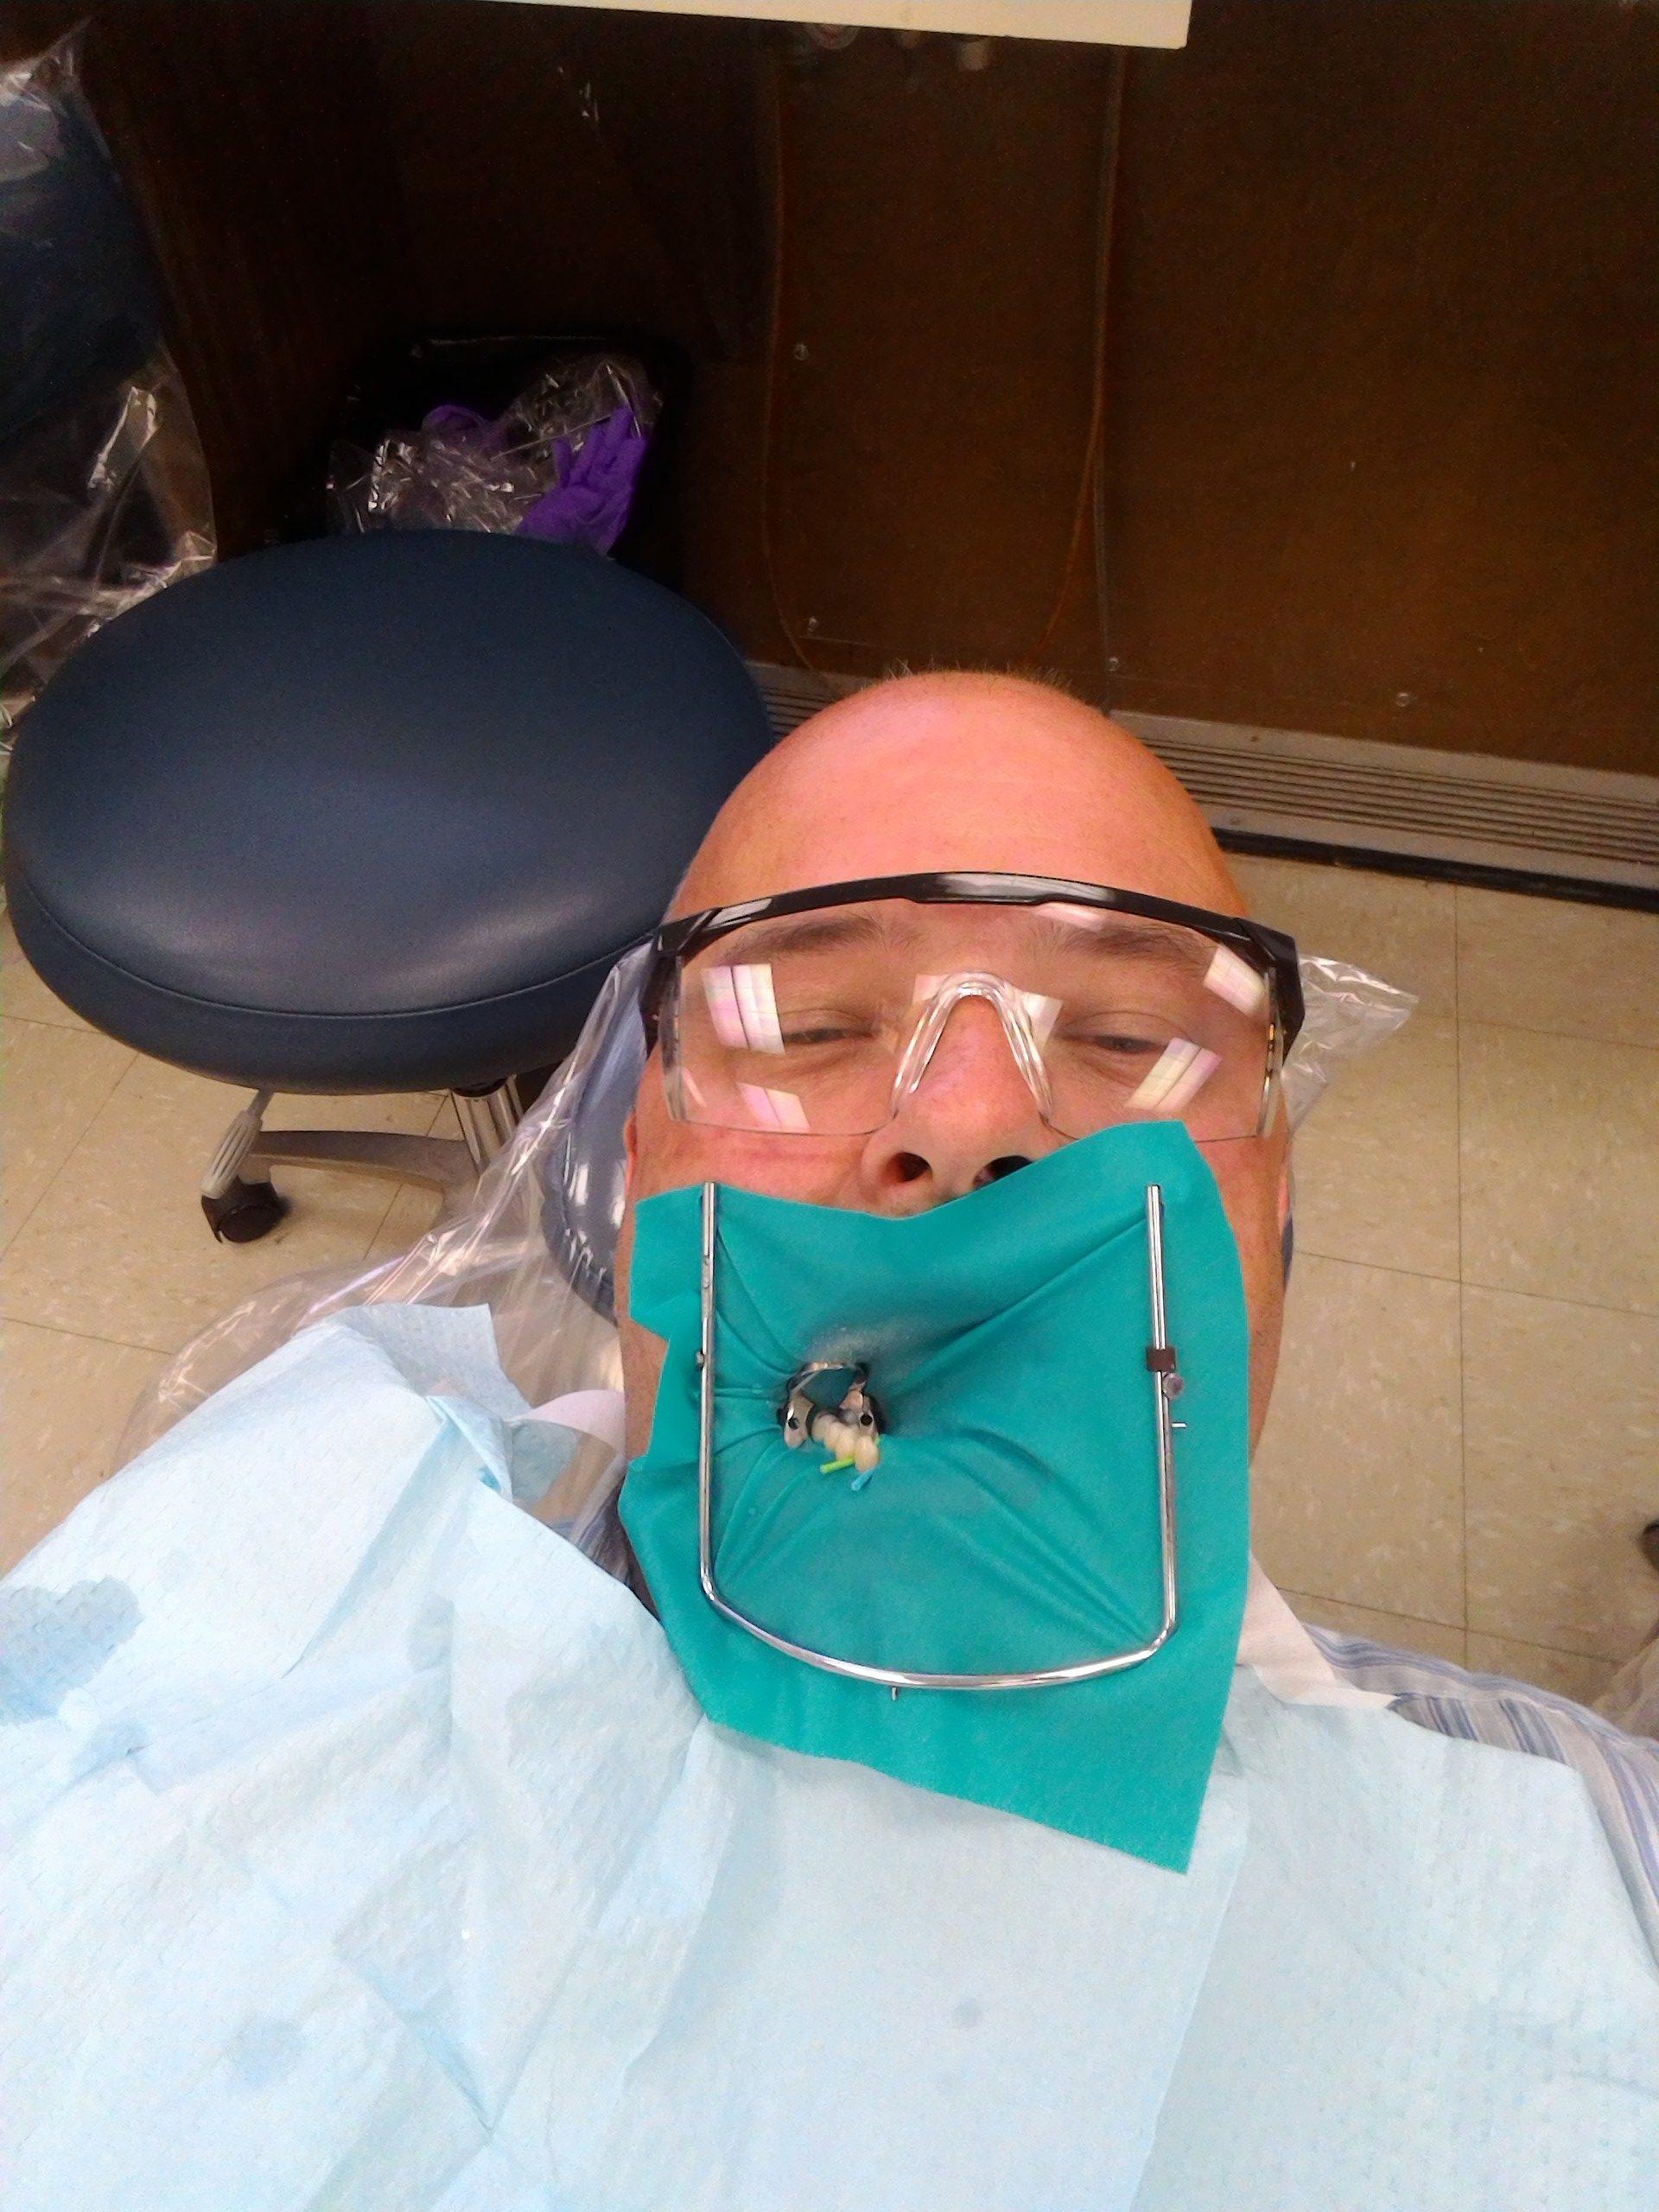 In this phot a metal frame is supporting a dental dam which is leaving a few teeth exposed tobe worked on. I'm waeering safety glasses and have a paper bib on my chest.